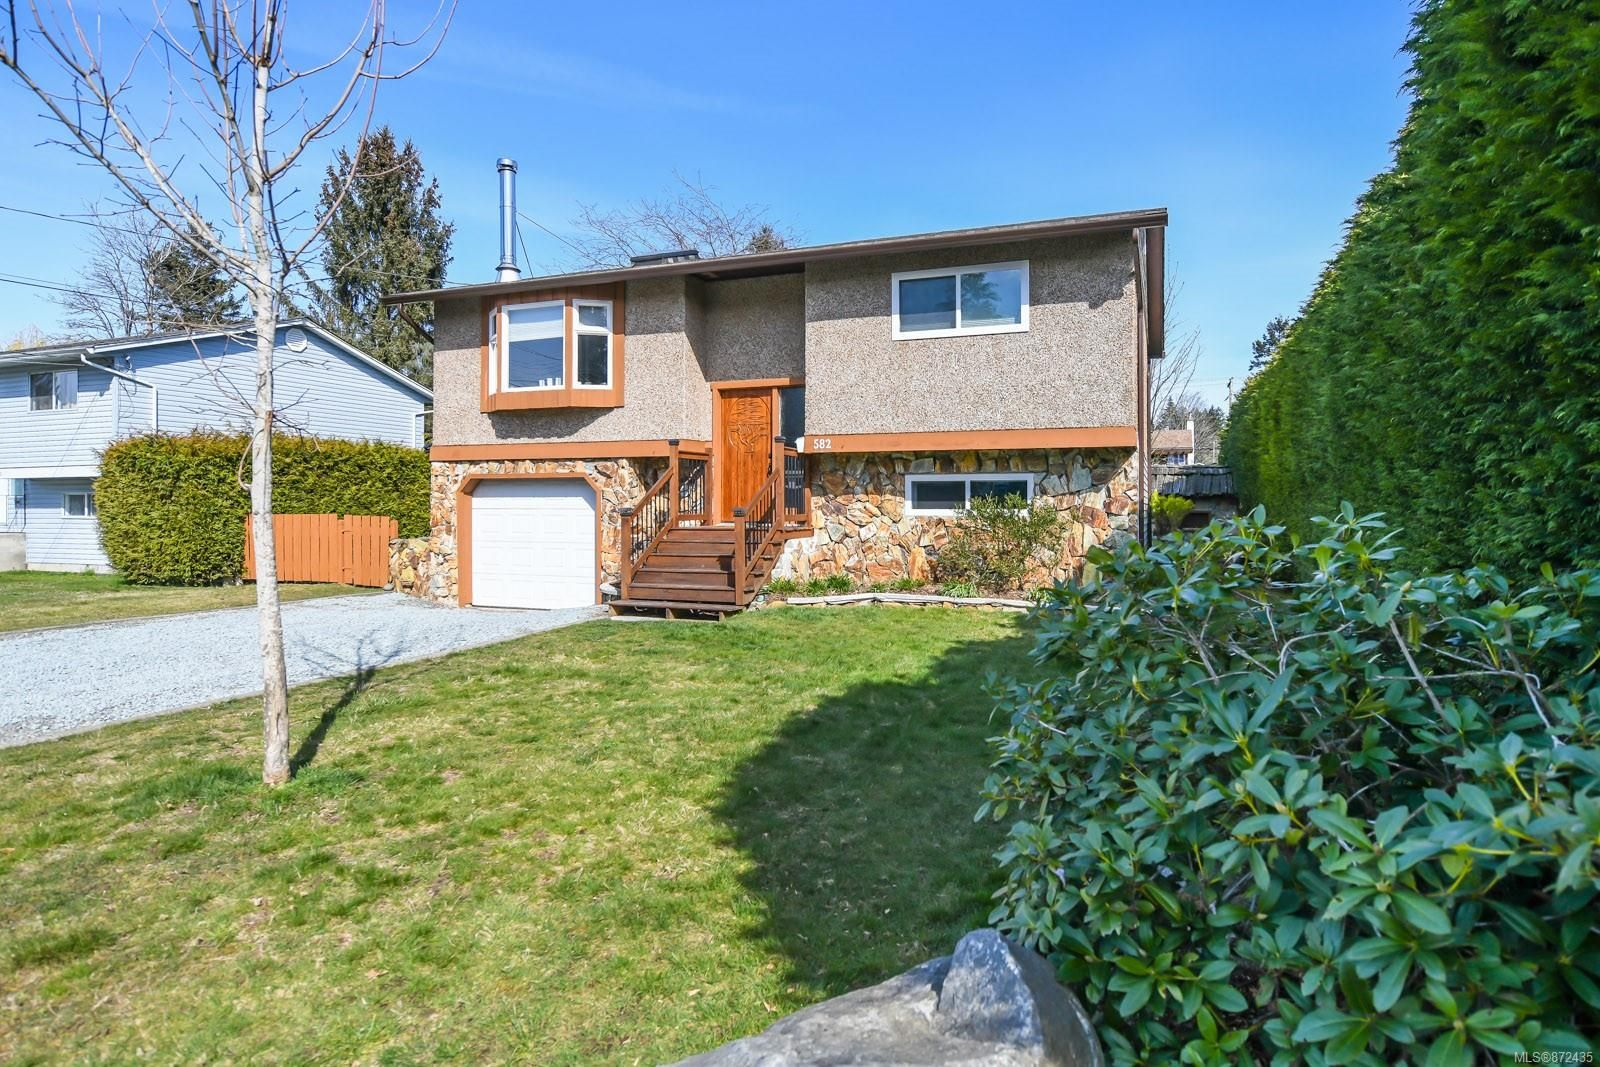 Main Photo: 582 Salish St in : CV Comox (Town of) House for sale (Comox Valley)  : MLS®# 872435